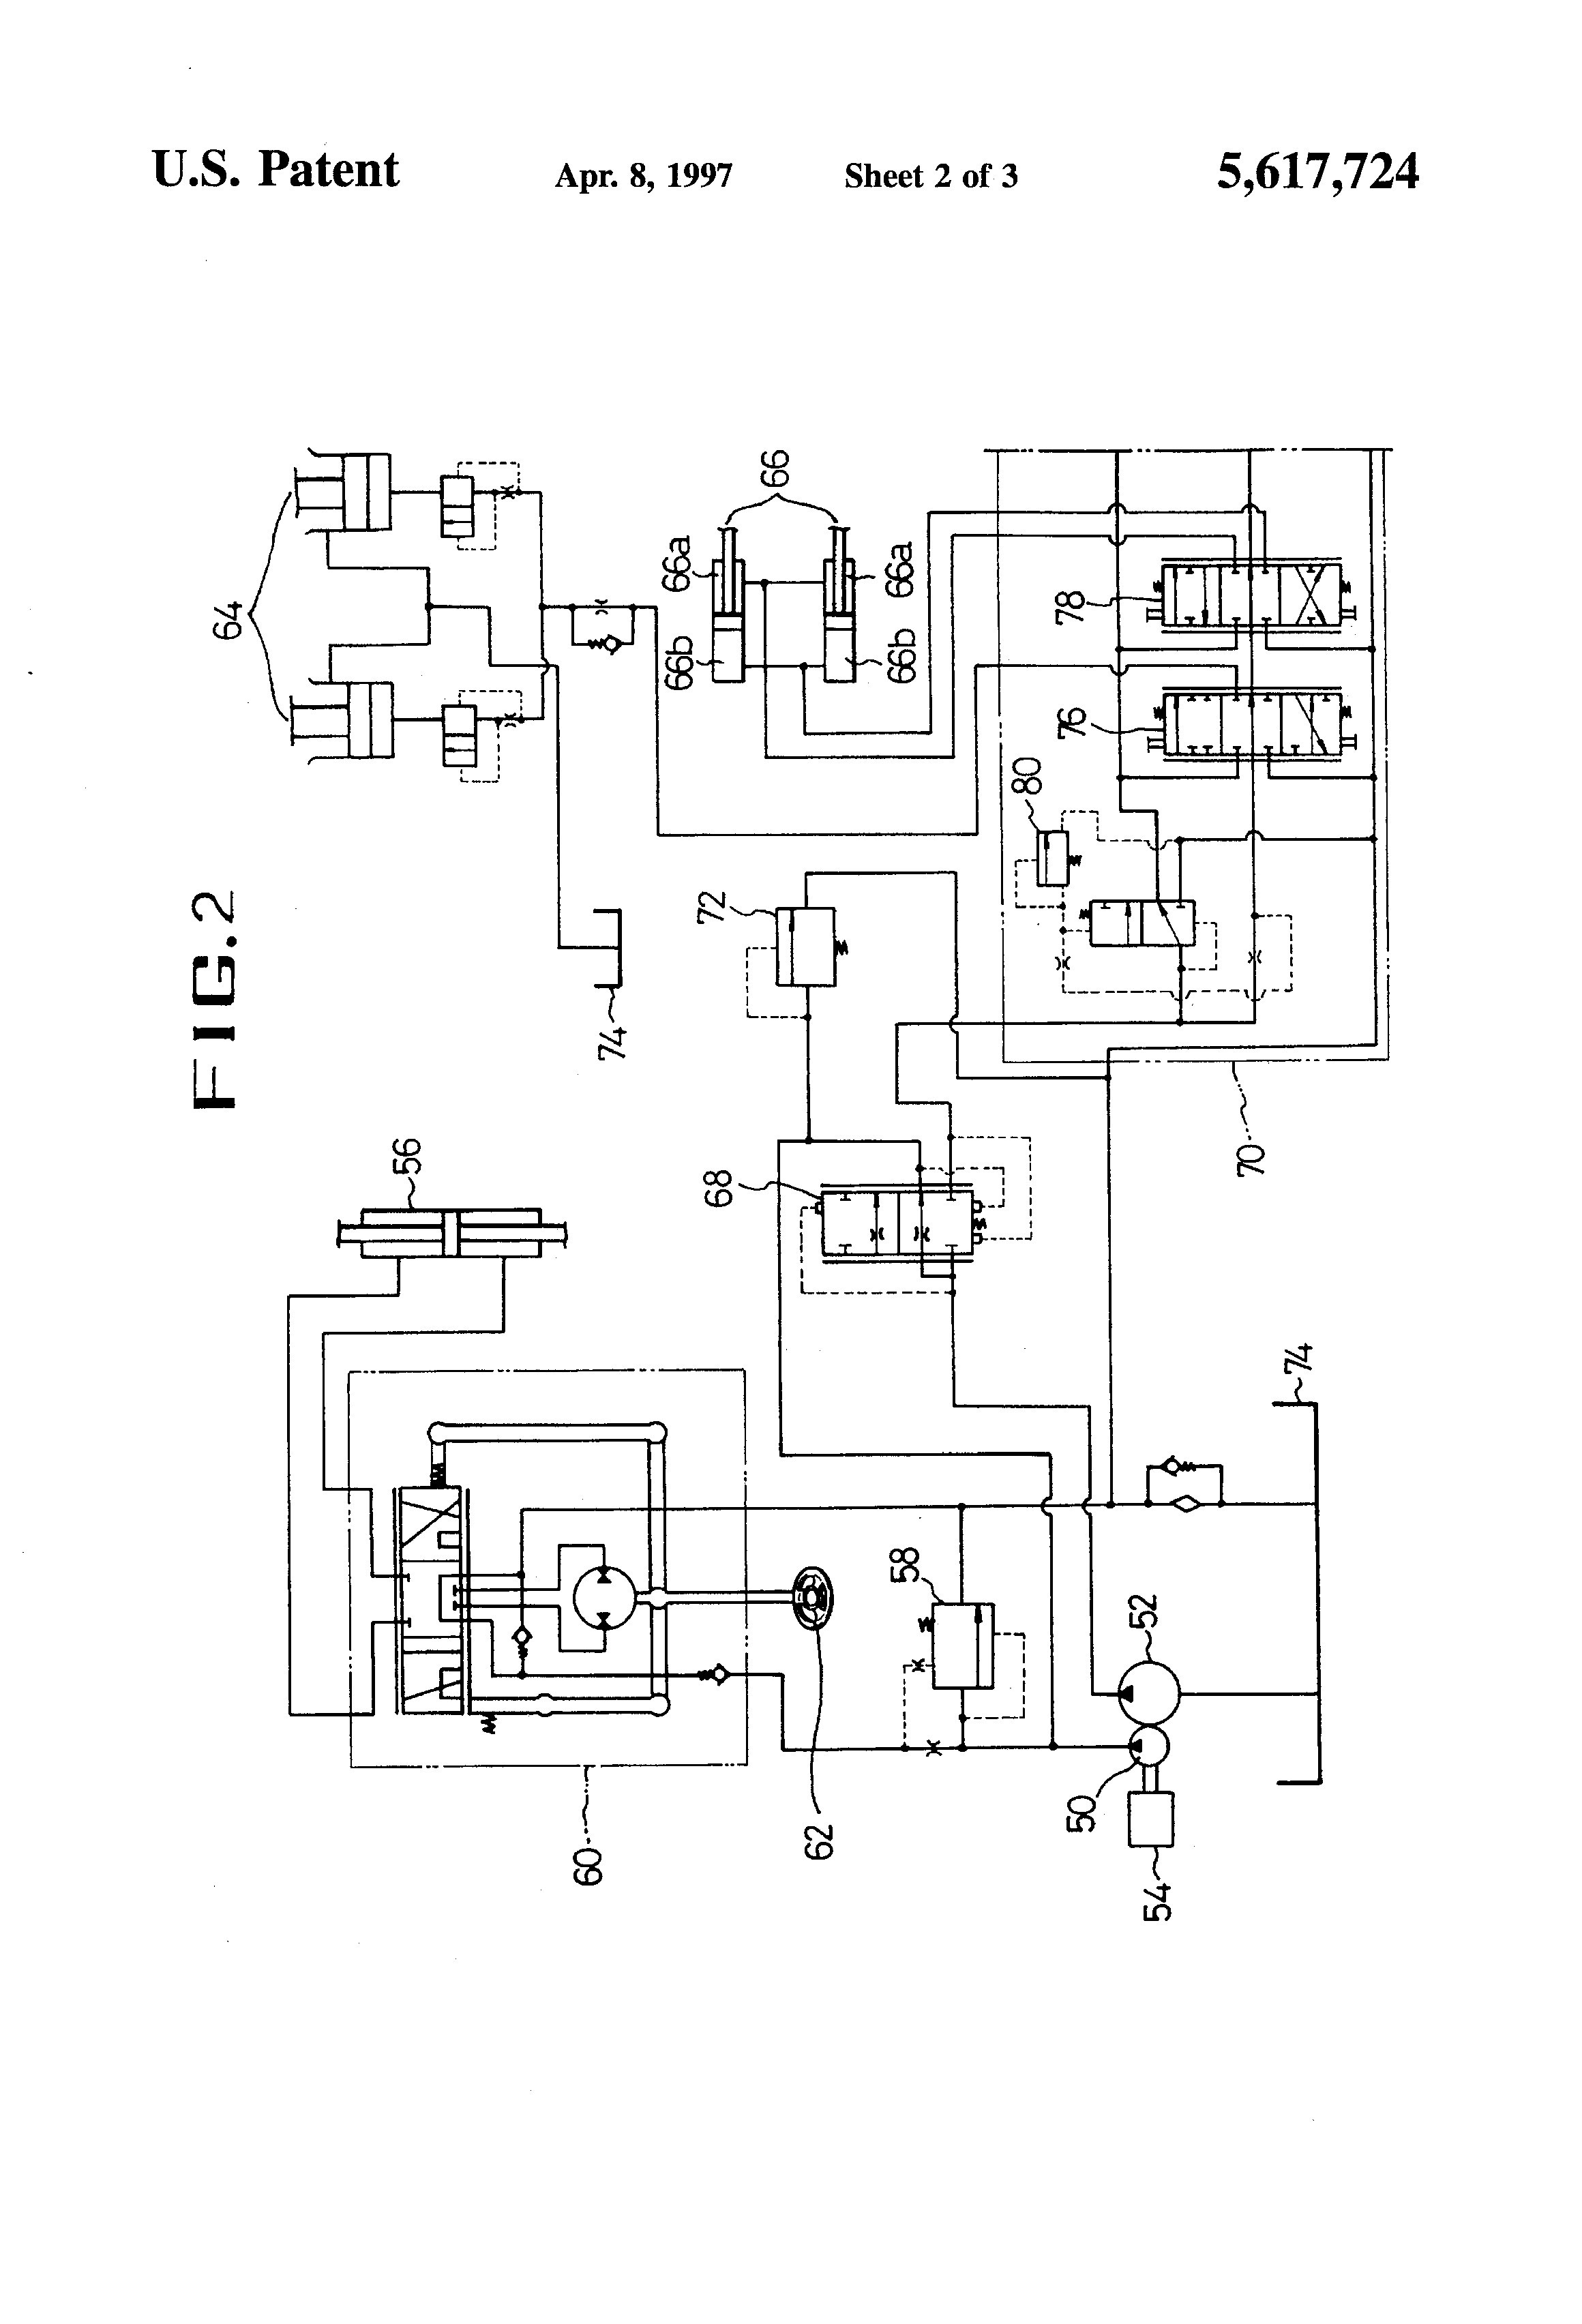 Control Engineering Block Diagram Block Diagram for Hydraulic Control System toyota forklift Hydraulic Of Control Engineering Block Diagram